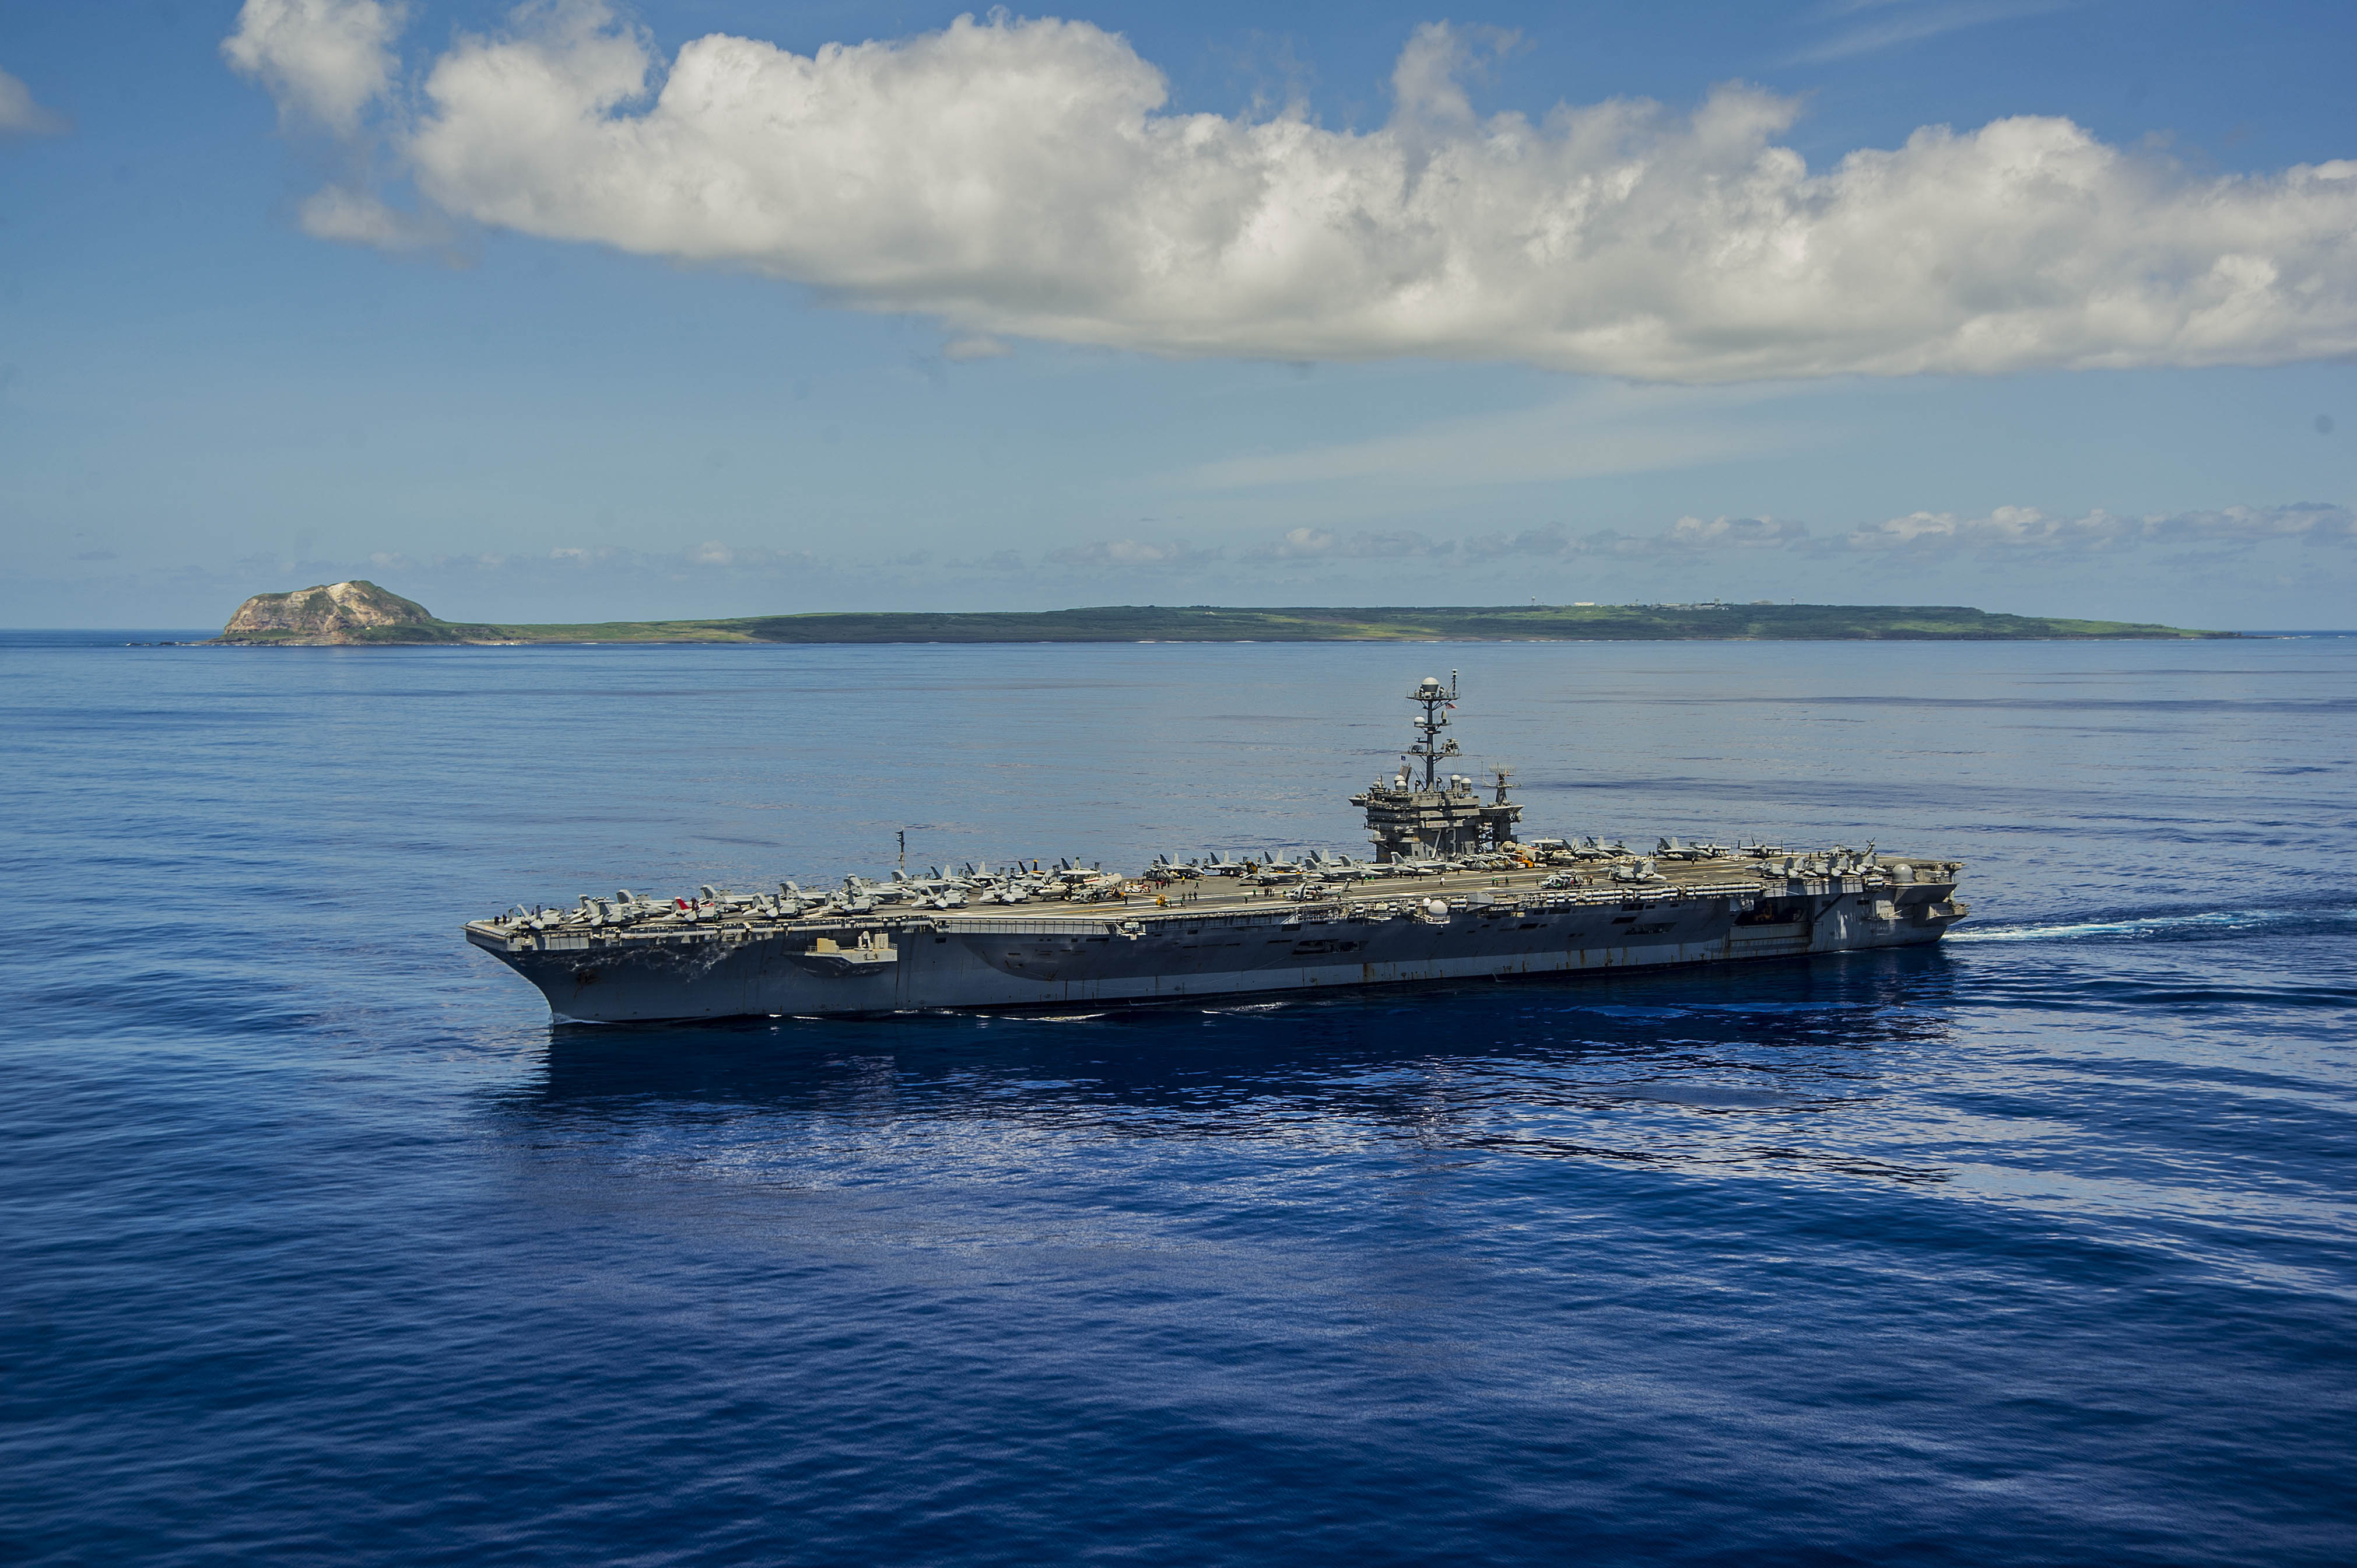 USS George Washington (CVN-73) is underway near the island of Iwo To, formerly known as Iwo Jima on Sept. 7, 2014. US Navy Photo